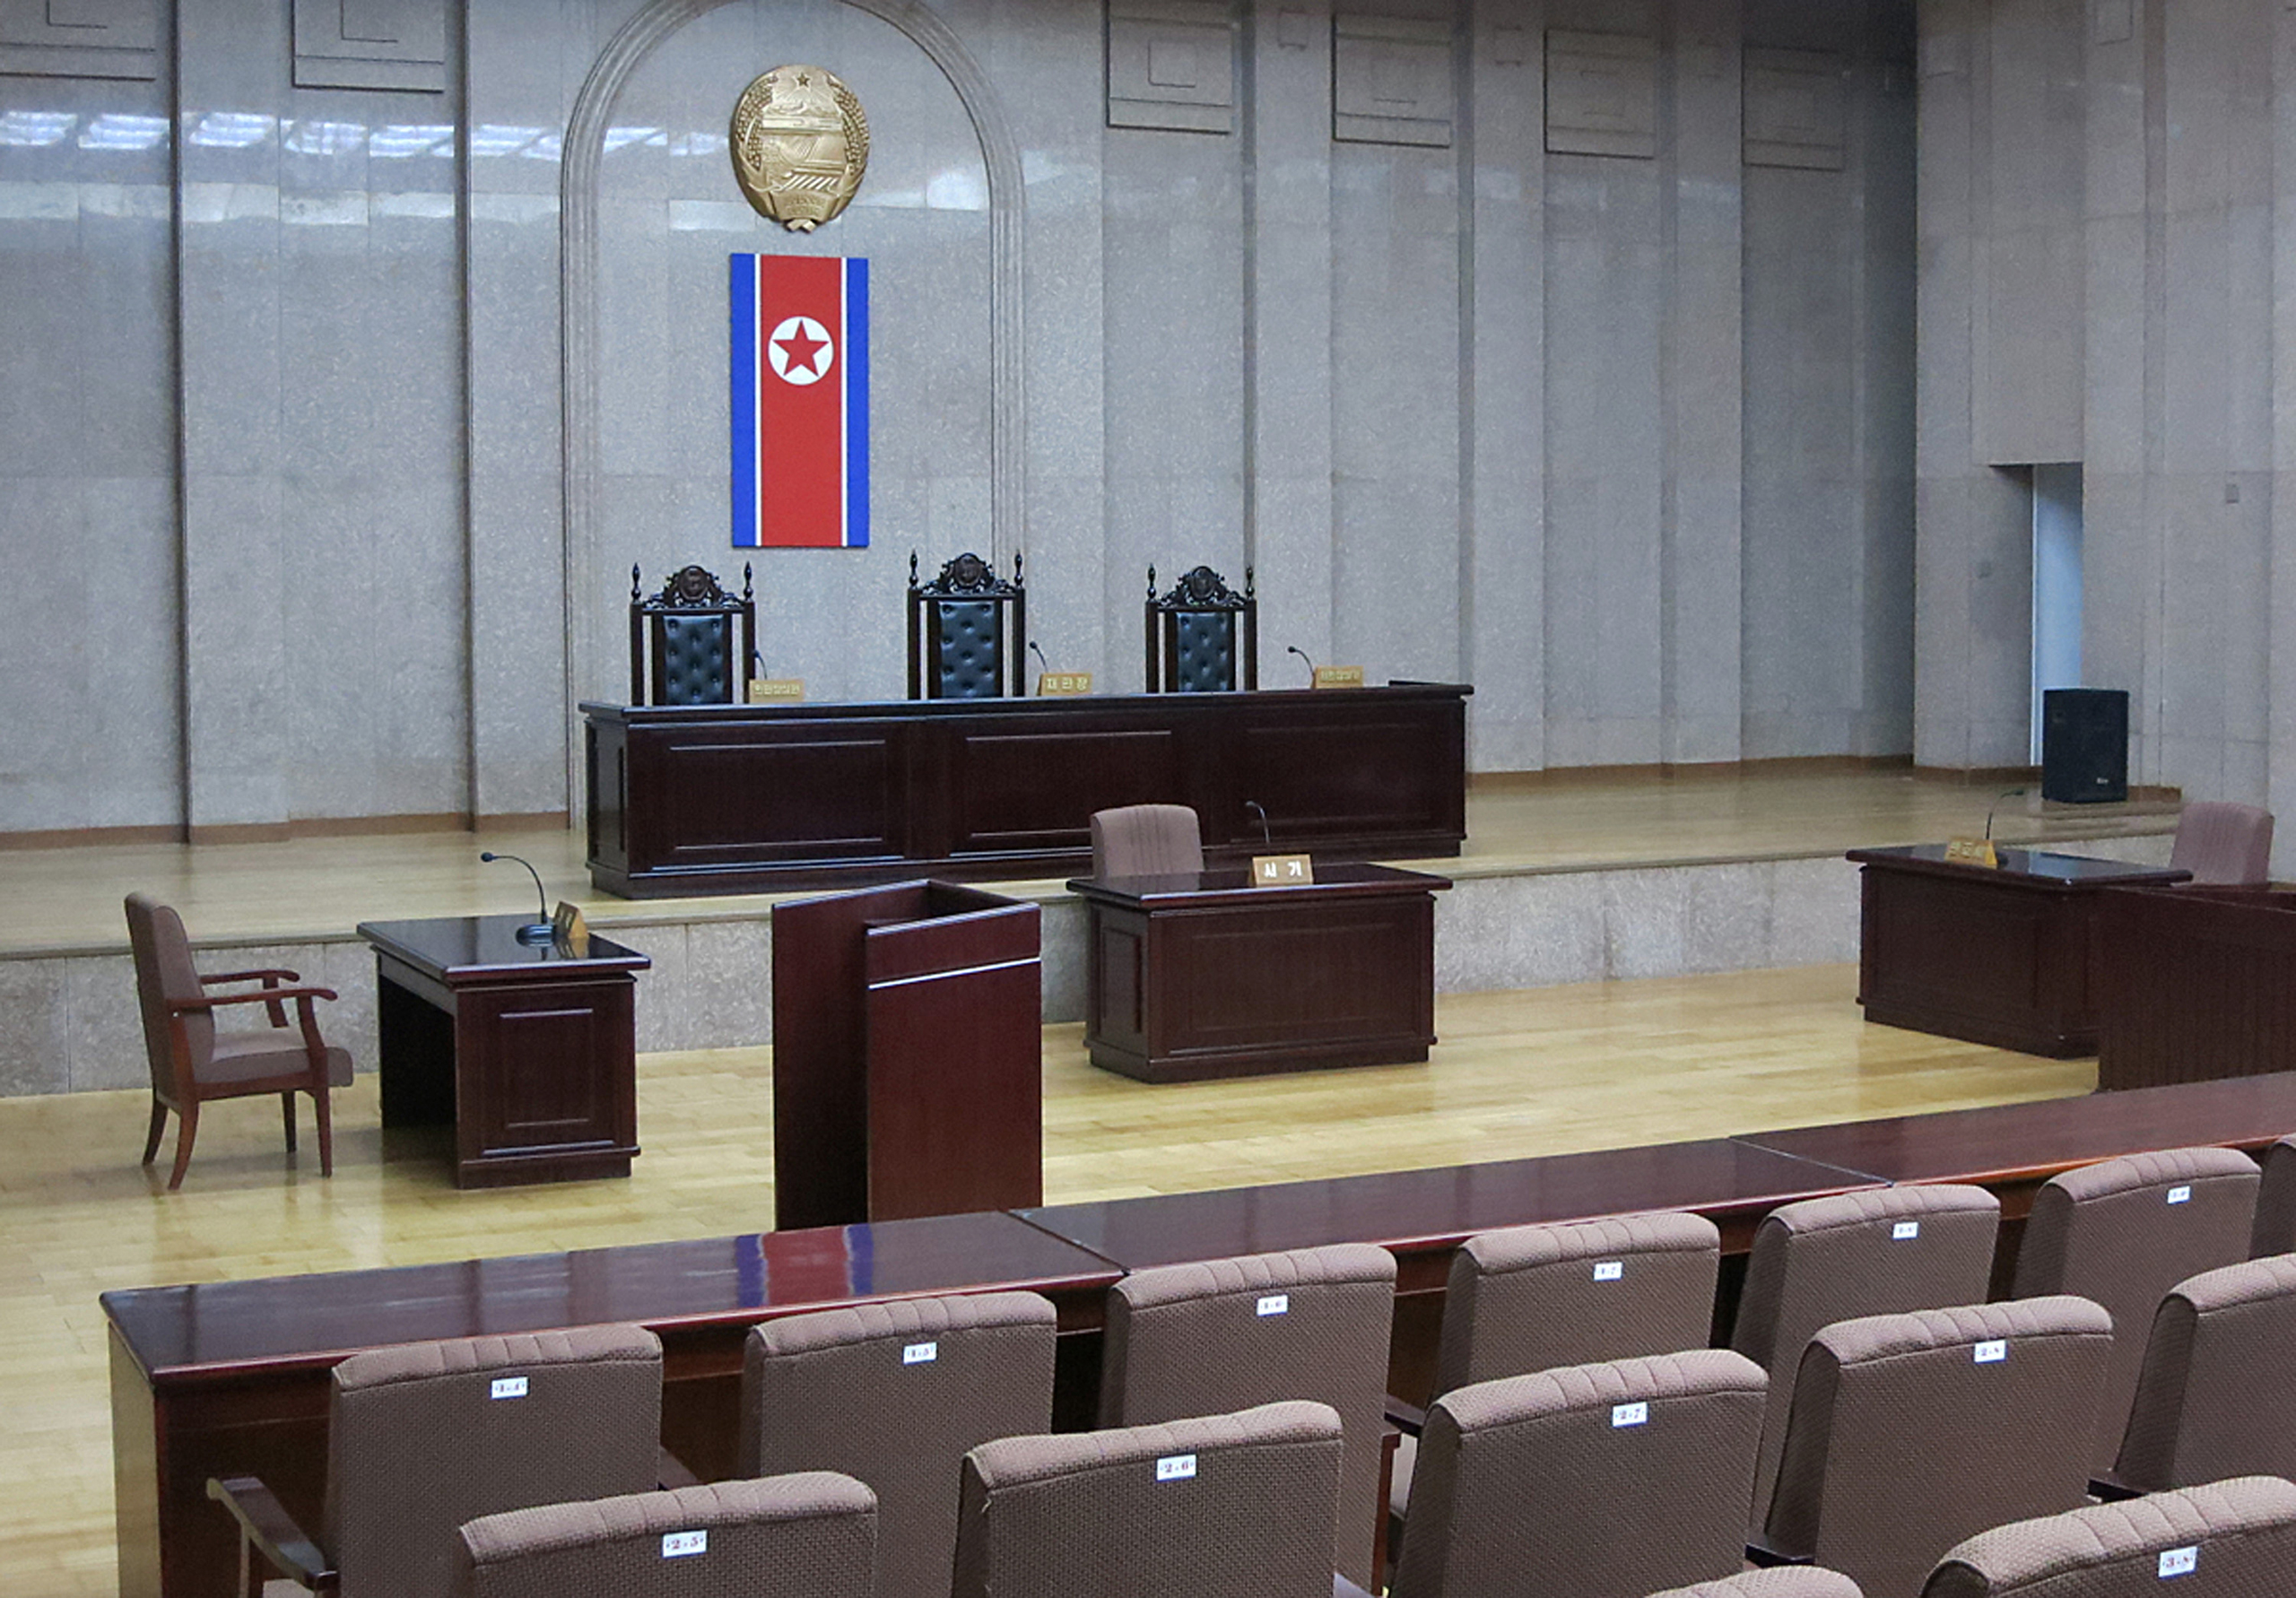 A North Korean flag hangs inside the interior of Pyongyang's Supreme Court in March 2013.